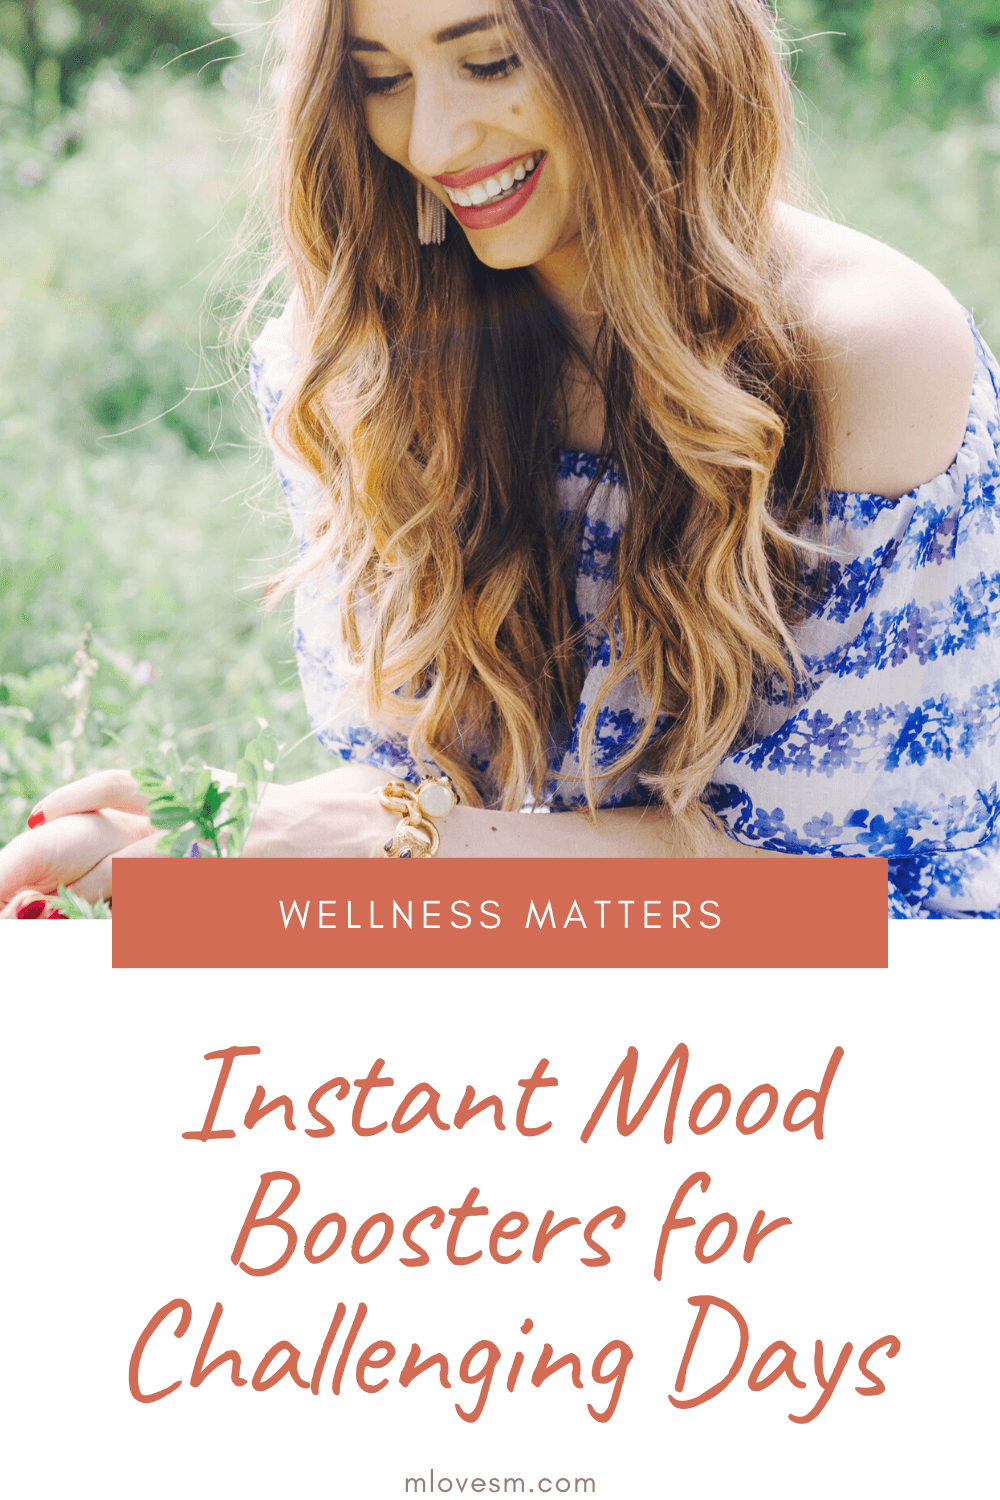 Here are some tips for an instant mood booster when you're having challenging days! - M Loves M @marmar